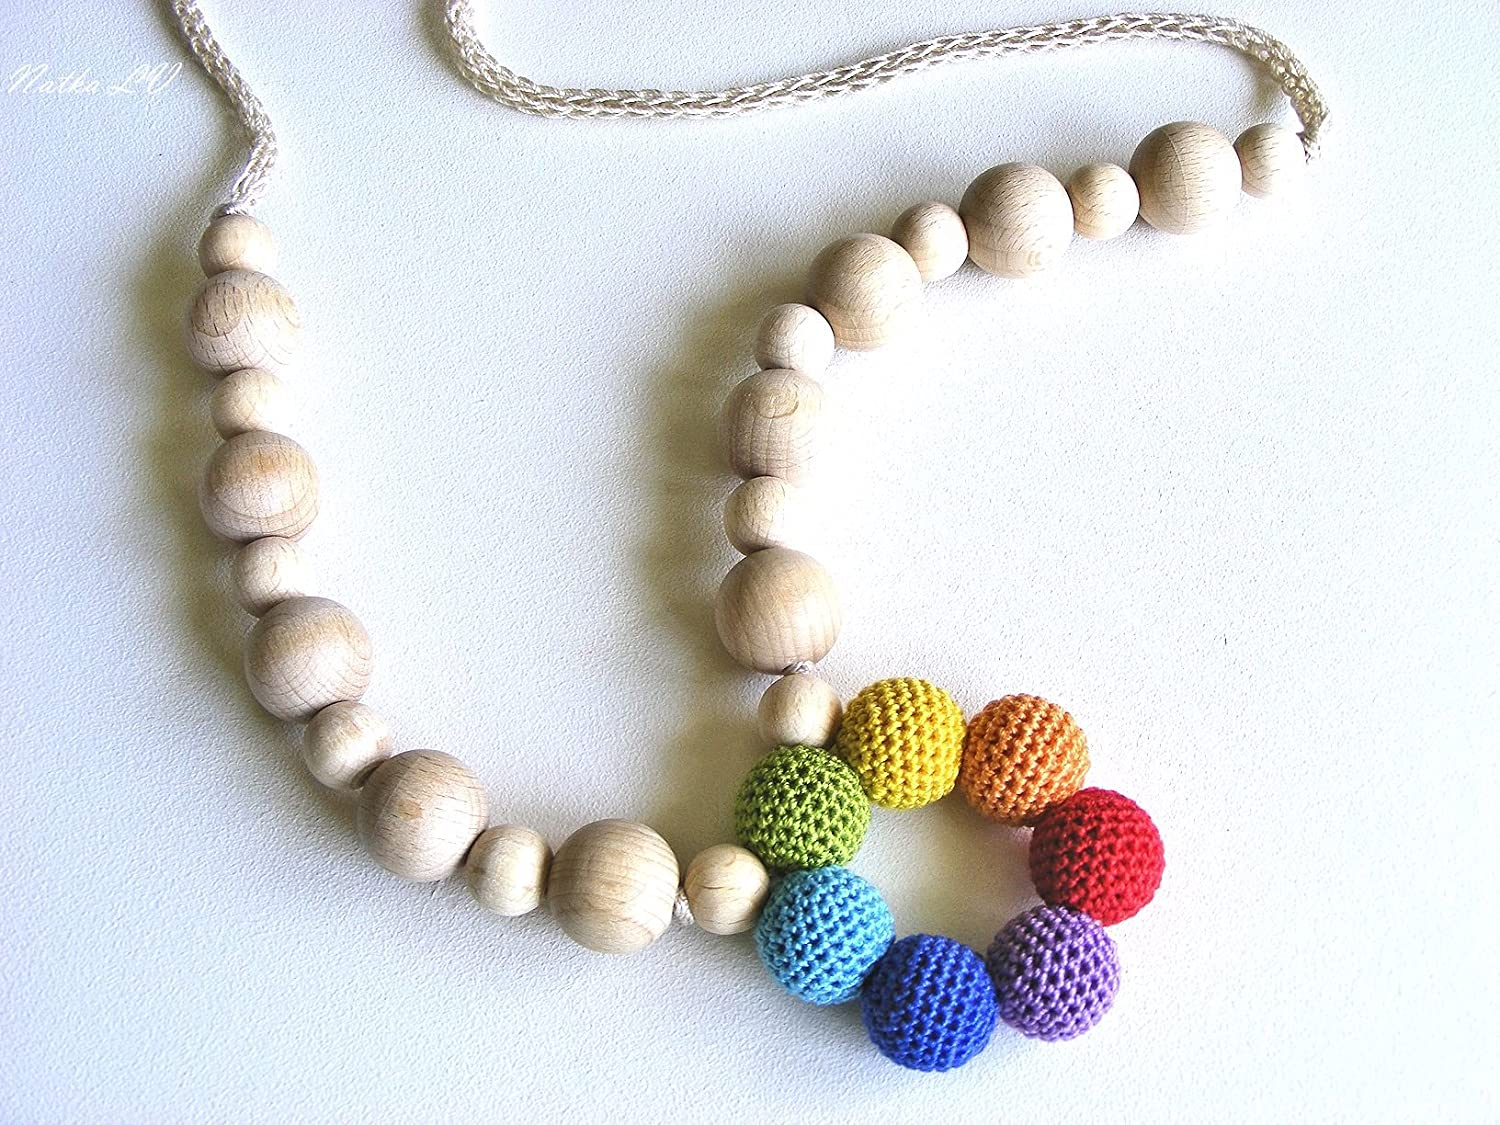 Simple rainbow nursing necklace, multicolor teething necklace, breastfeeding necklace, wooden crochet baby toy, natural teething ring